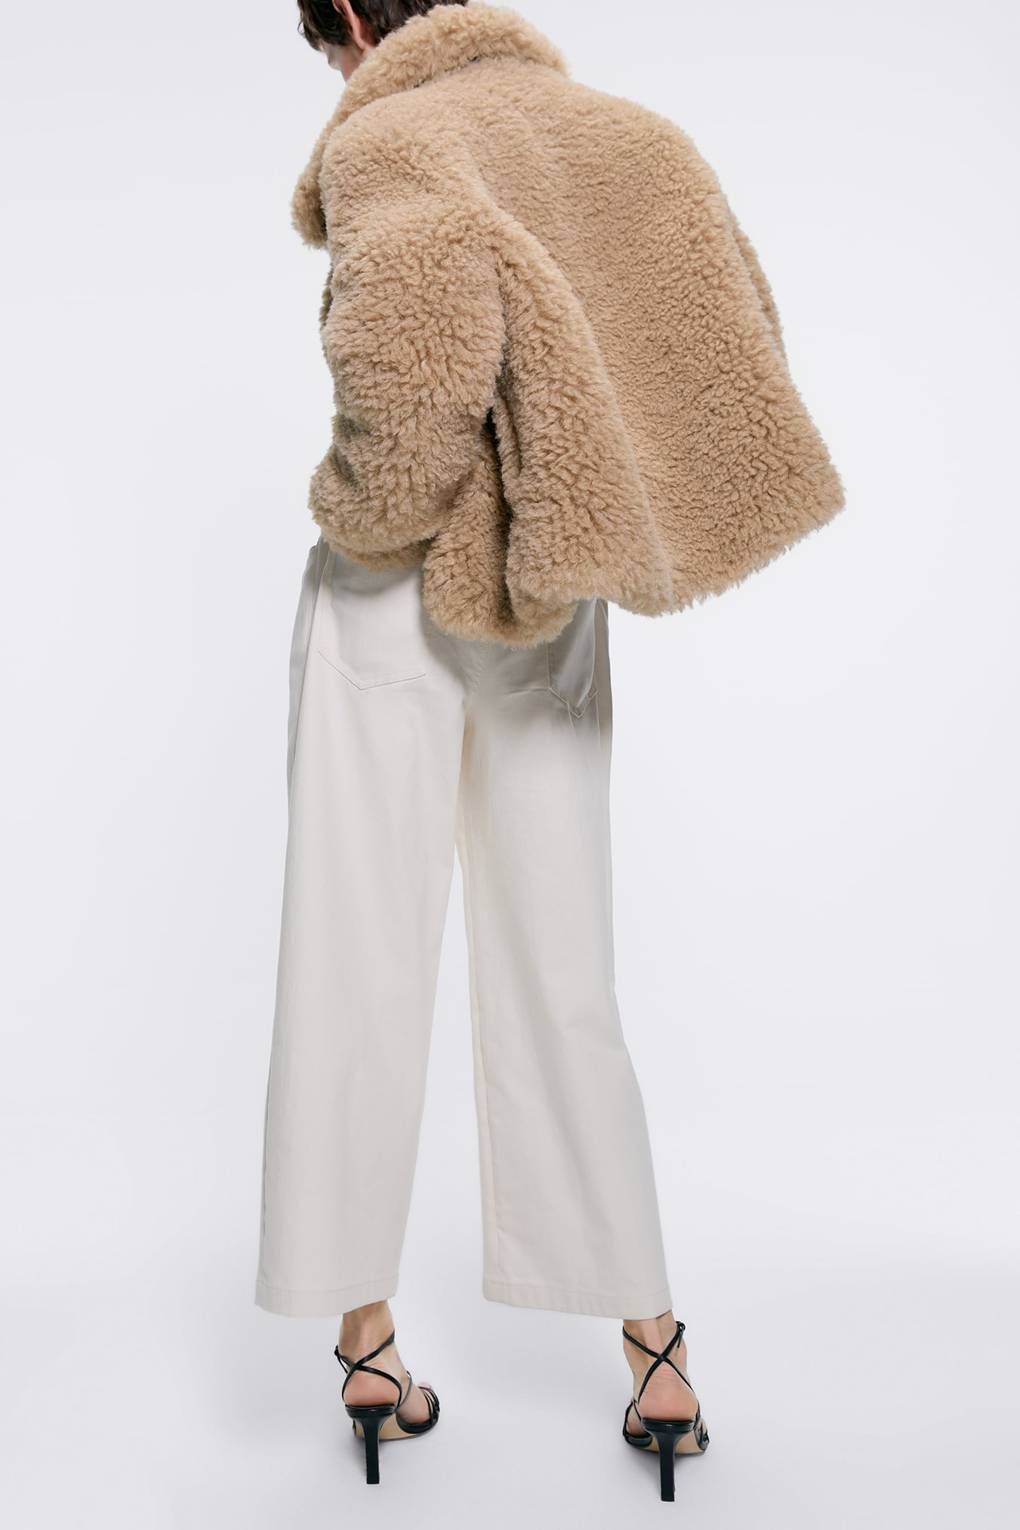 This Topshop Teddy Coat Will Be The